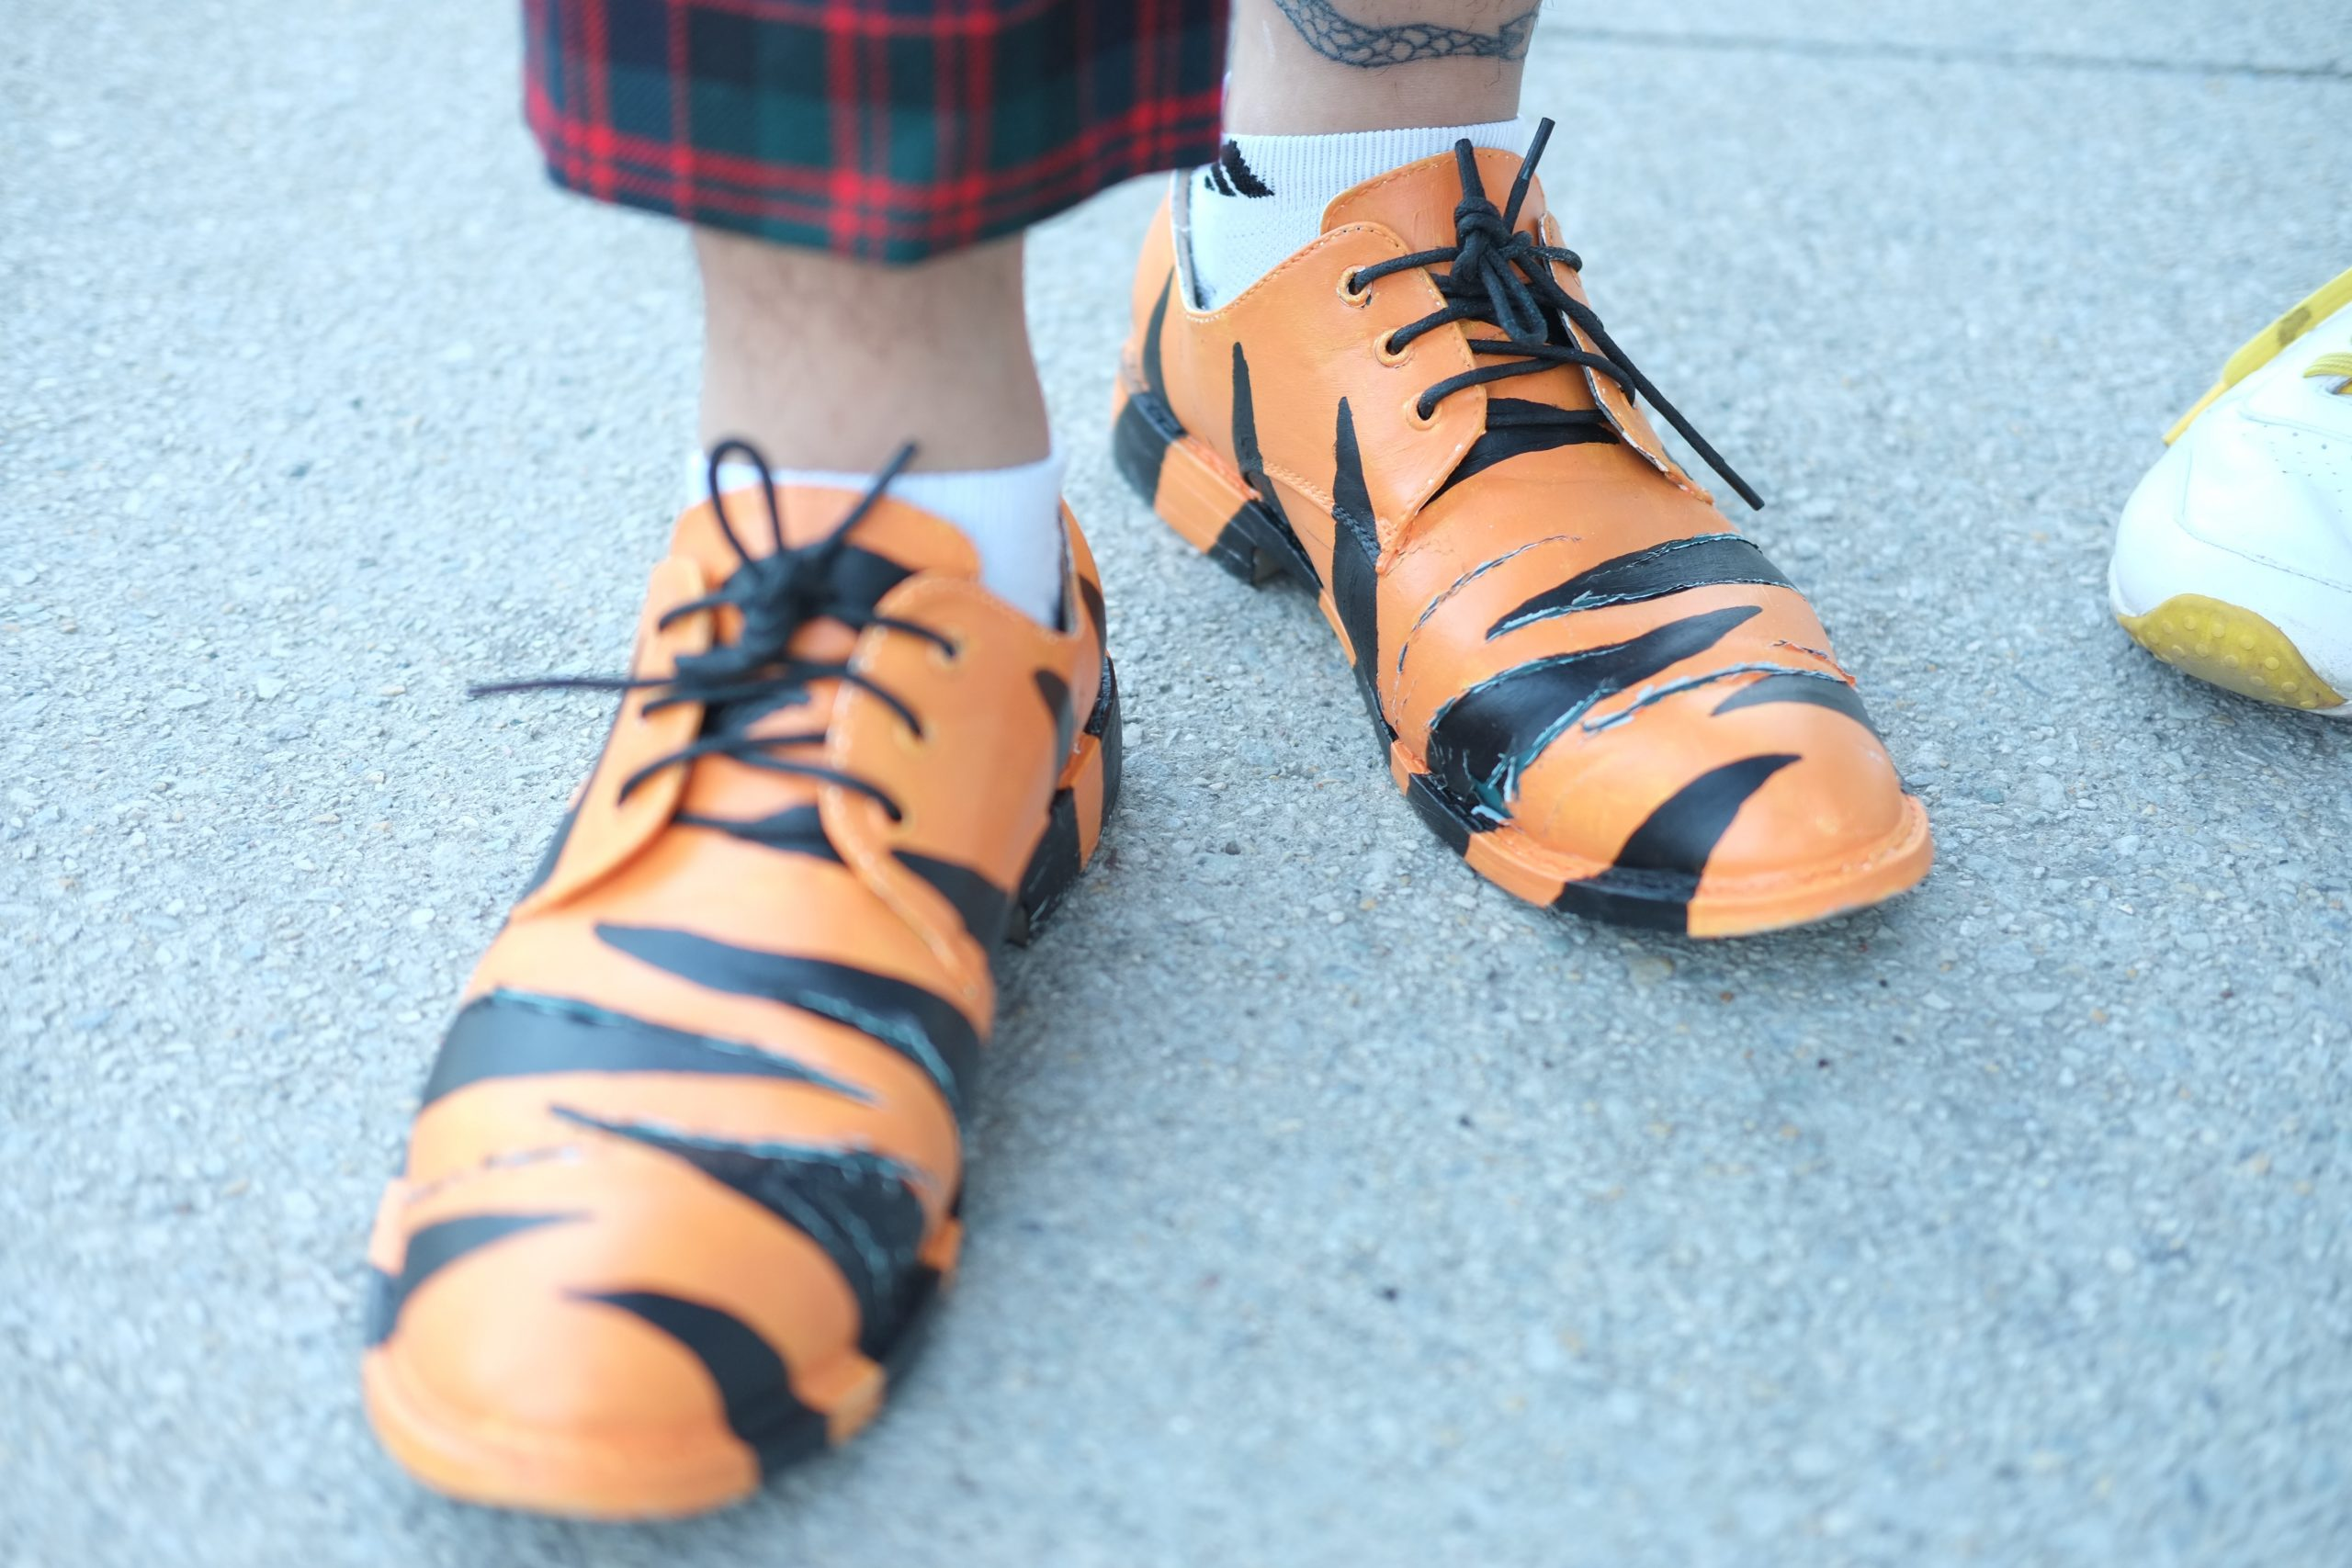 Anwar painted the tiger pattern on his shoes himself.